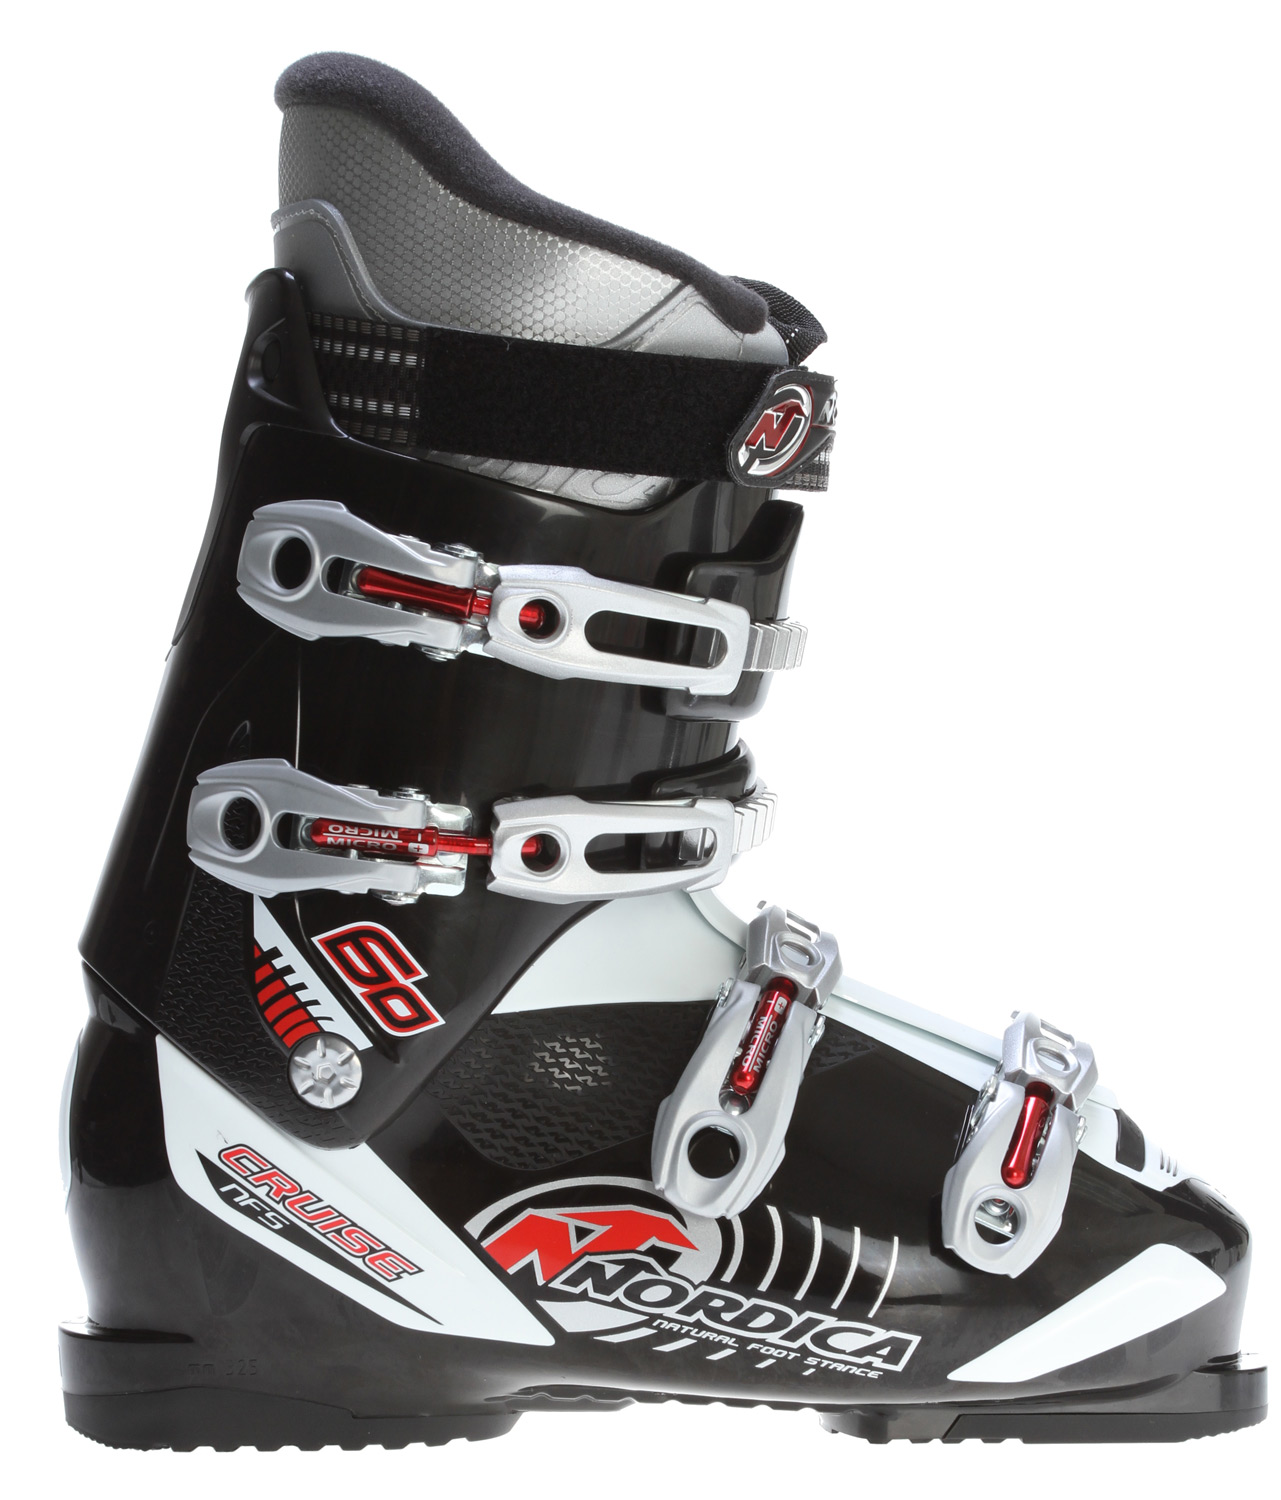 Ski Key Features of the Nordica Cruise 60 Ski Boots: NFS Natural foot stance ACP Adjustable cuff profile 3D Comfort fit liner ALU Buckles mix Size range 24.0-31.0 MP Last: 104 - $138.95